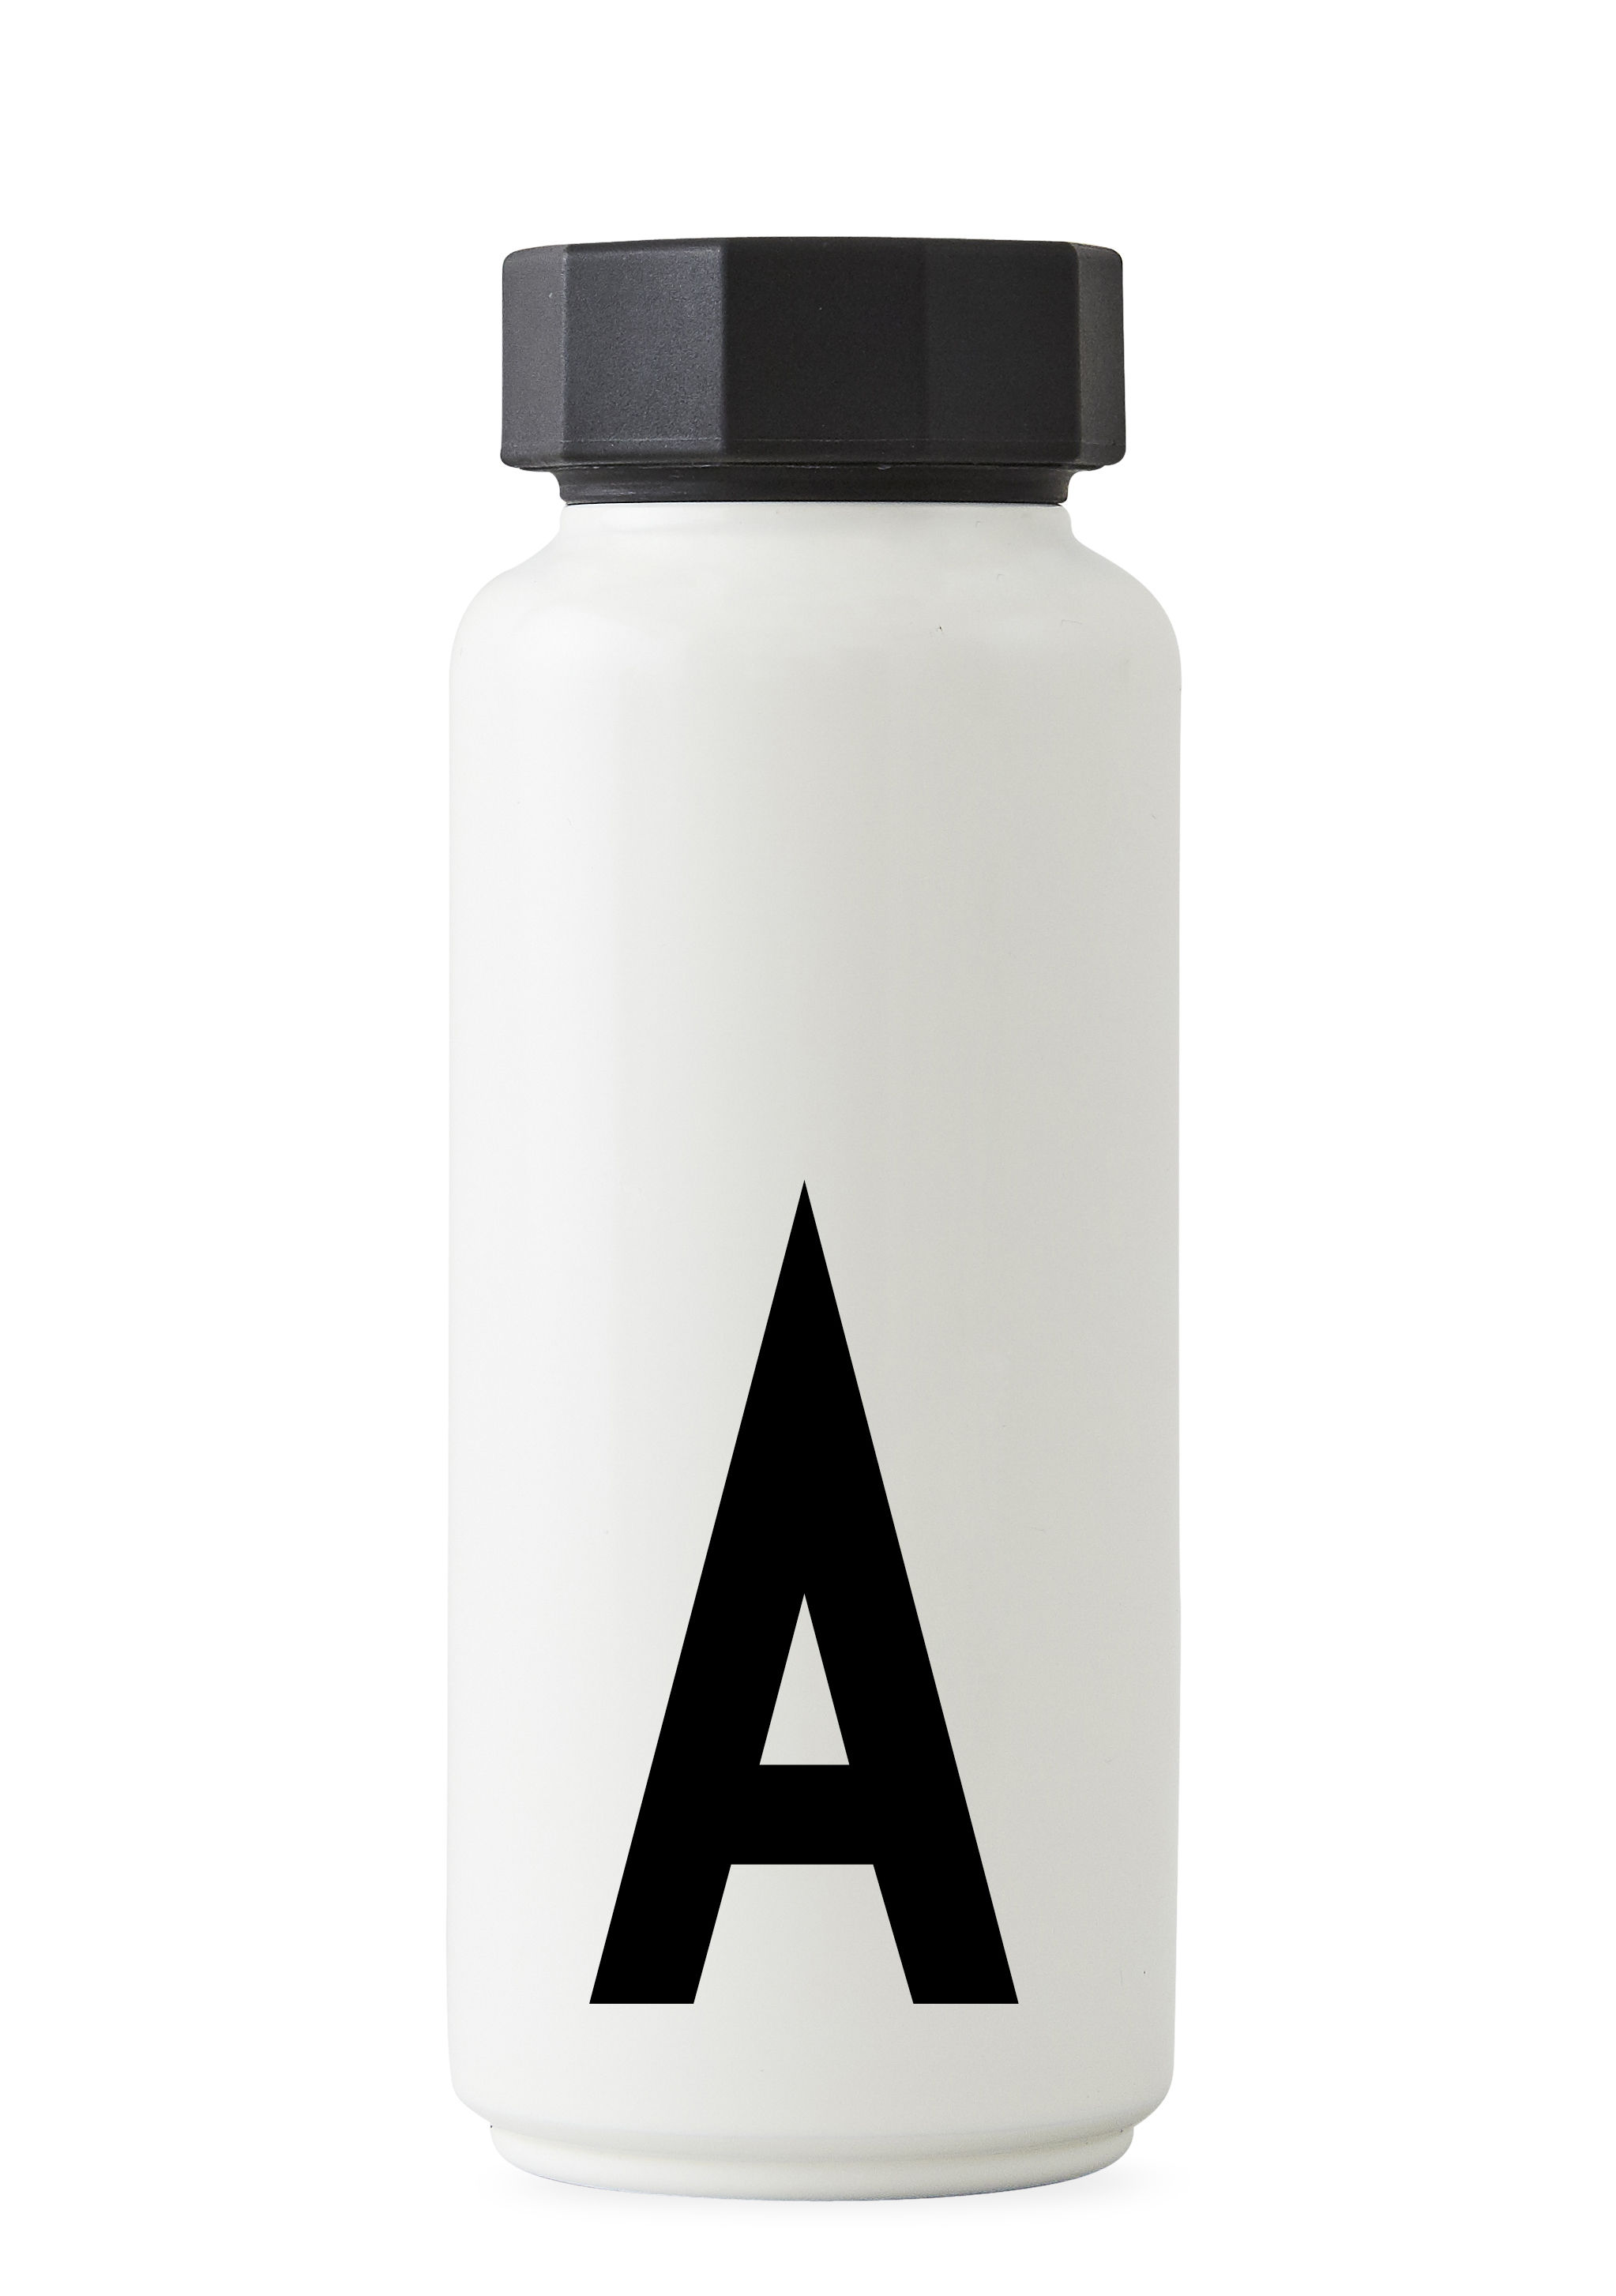 Tableware - Water Carafes & Wine Decanters - Arne Jacobsen Insulated bottle - / 500 ml - Letter A by Design Letters - White / Letter A - Polypropylene, Stainless steel